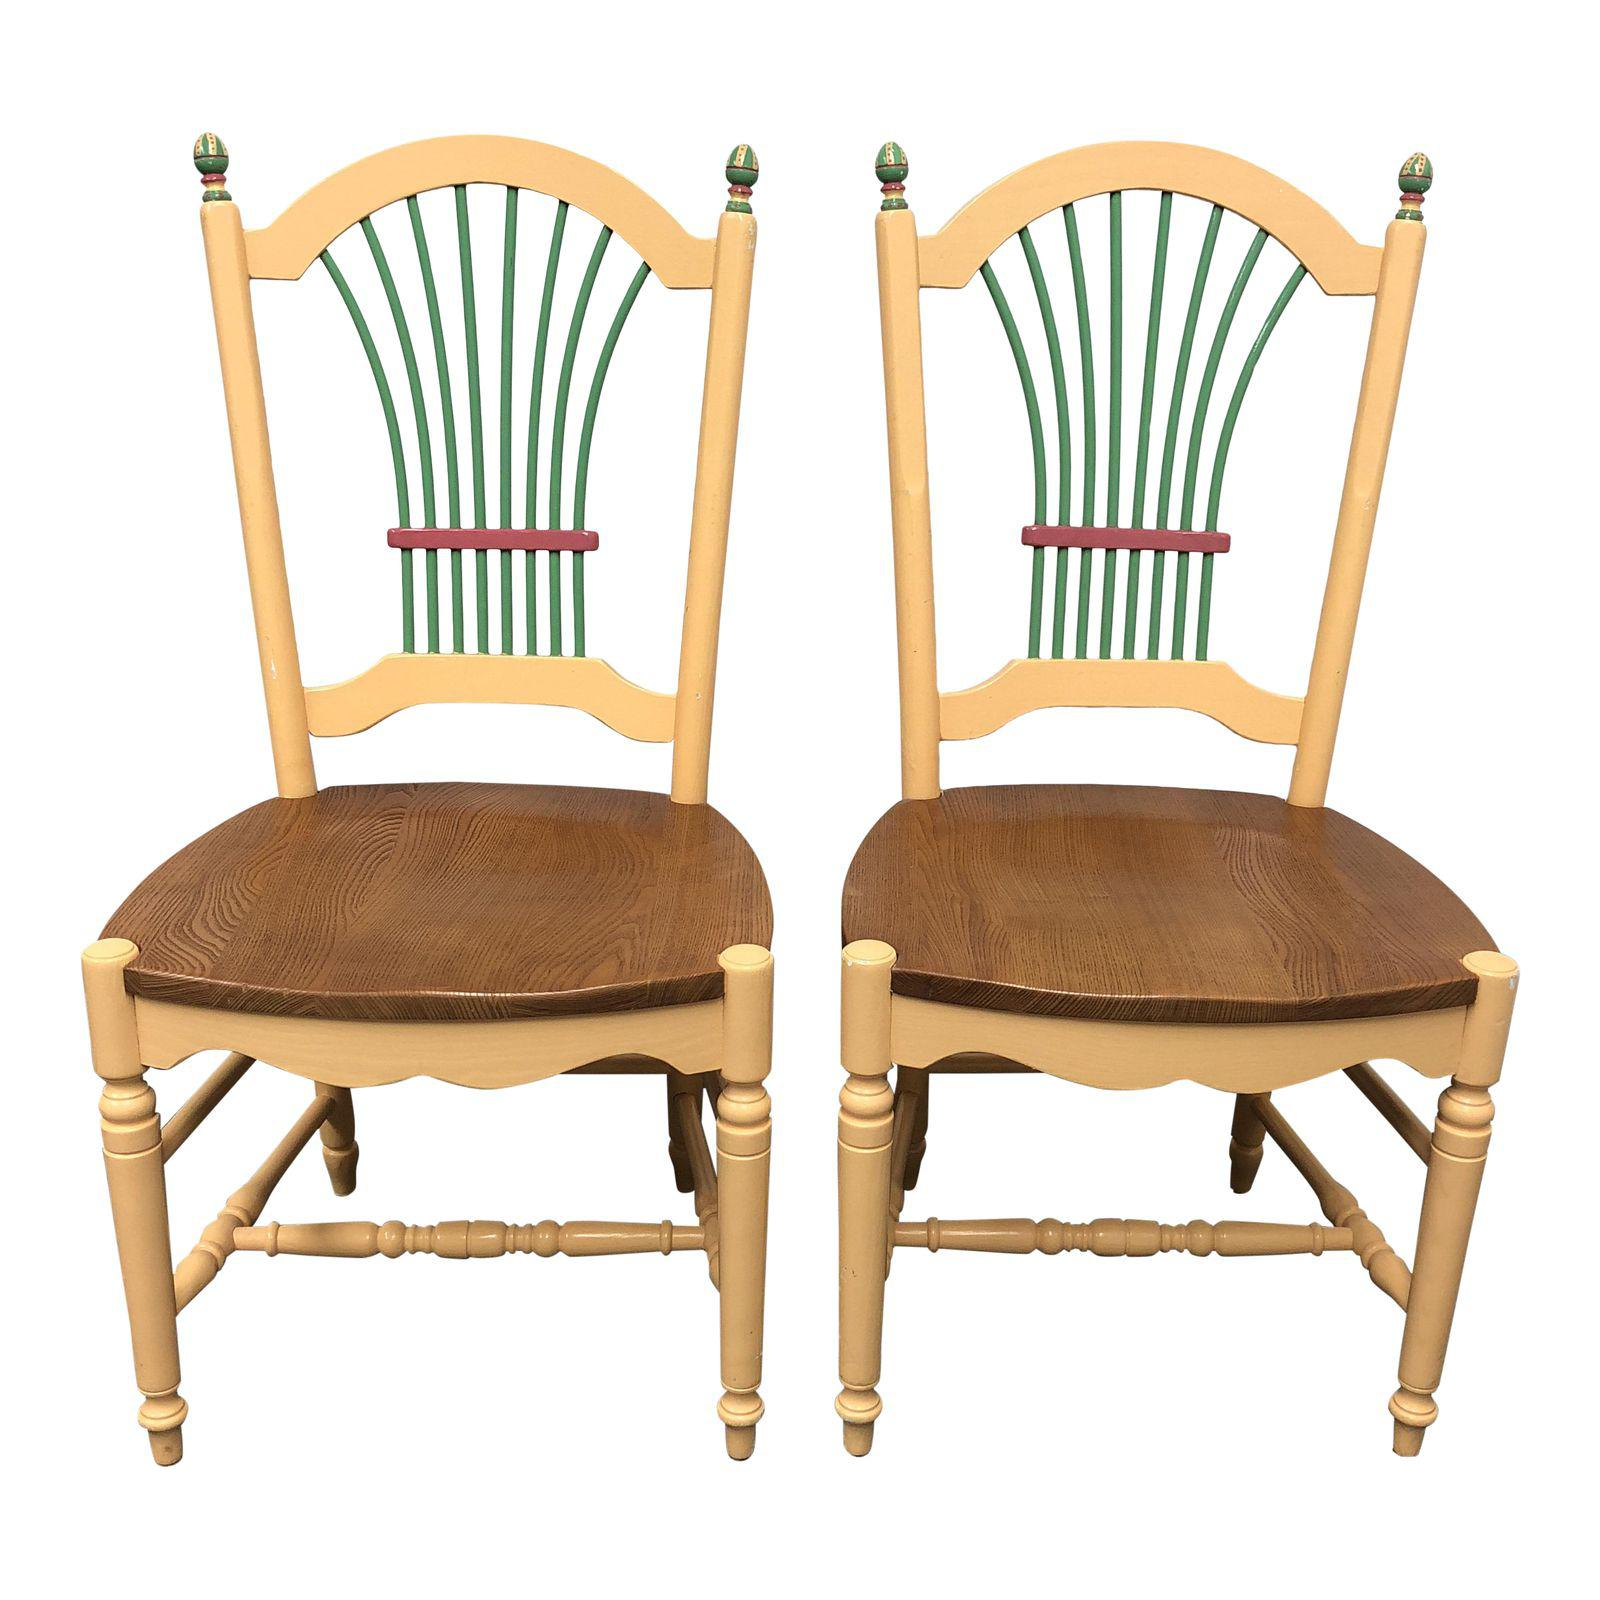 hand painted wooden chairs reclining patio side a pair design plus gallery